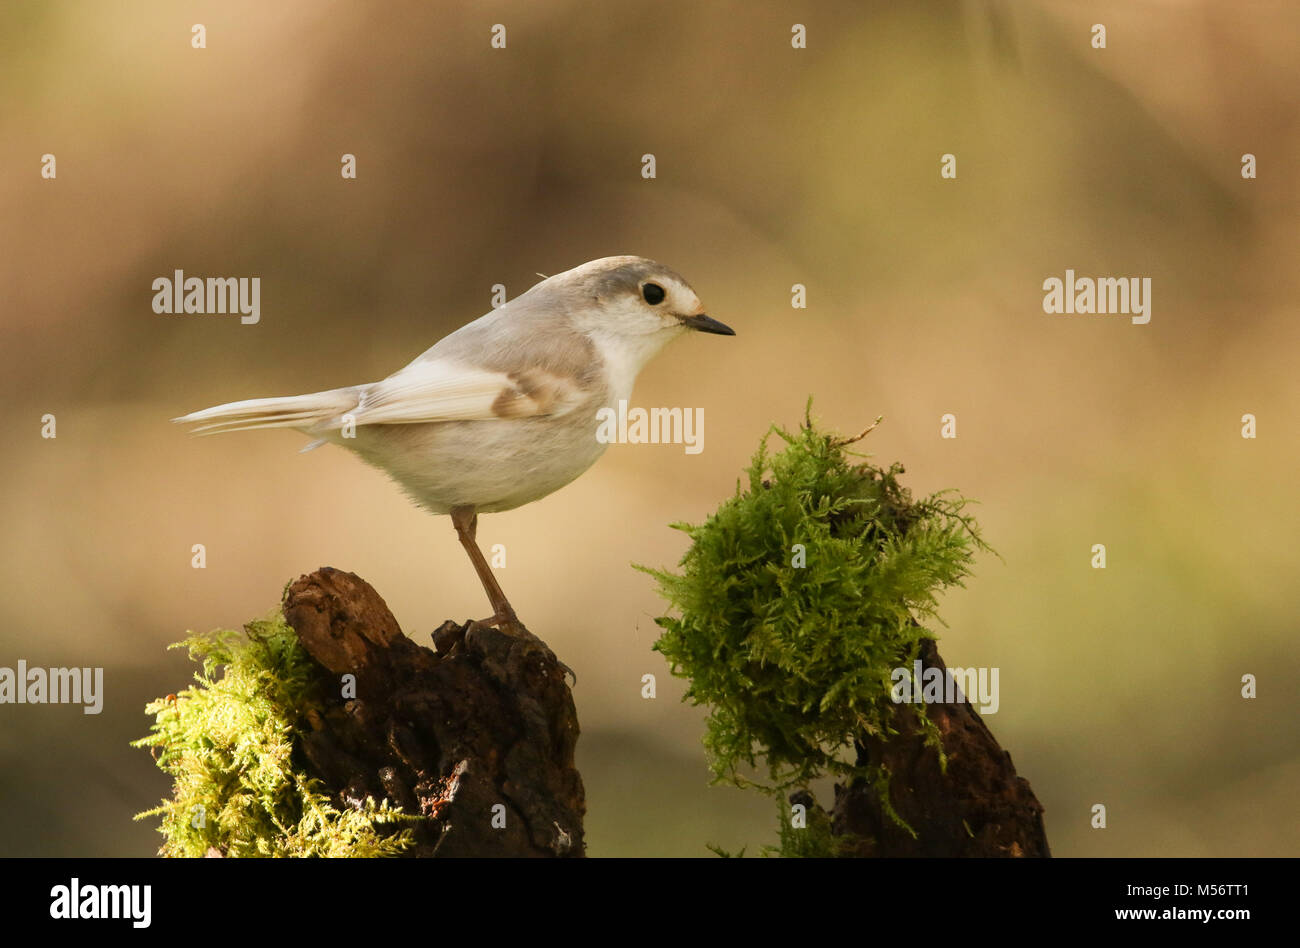 A rare Leucistic Robin (Erithacus rubecula) perched on a mossy wooden stump in the shade of the woods. - Stock Image